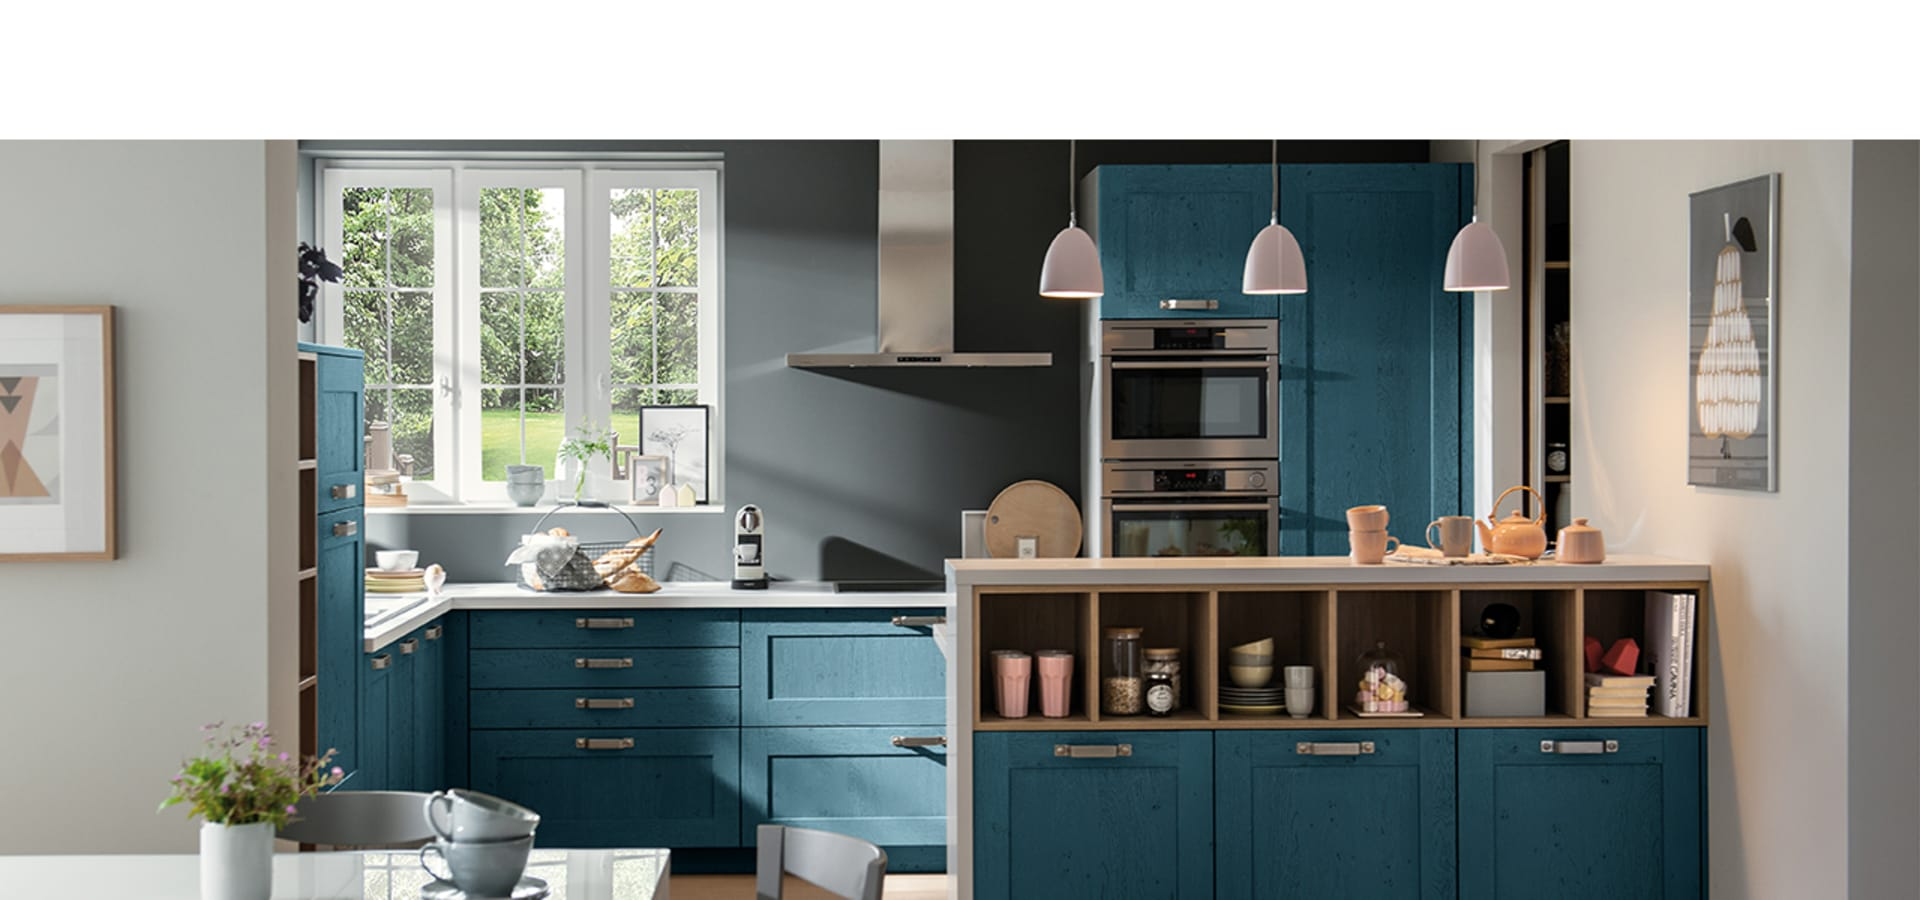 Schmidt kitchens barnet kitchen manufacturers in london for Contemporary shaker style kitchen